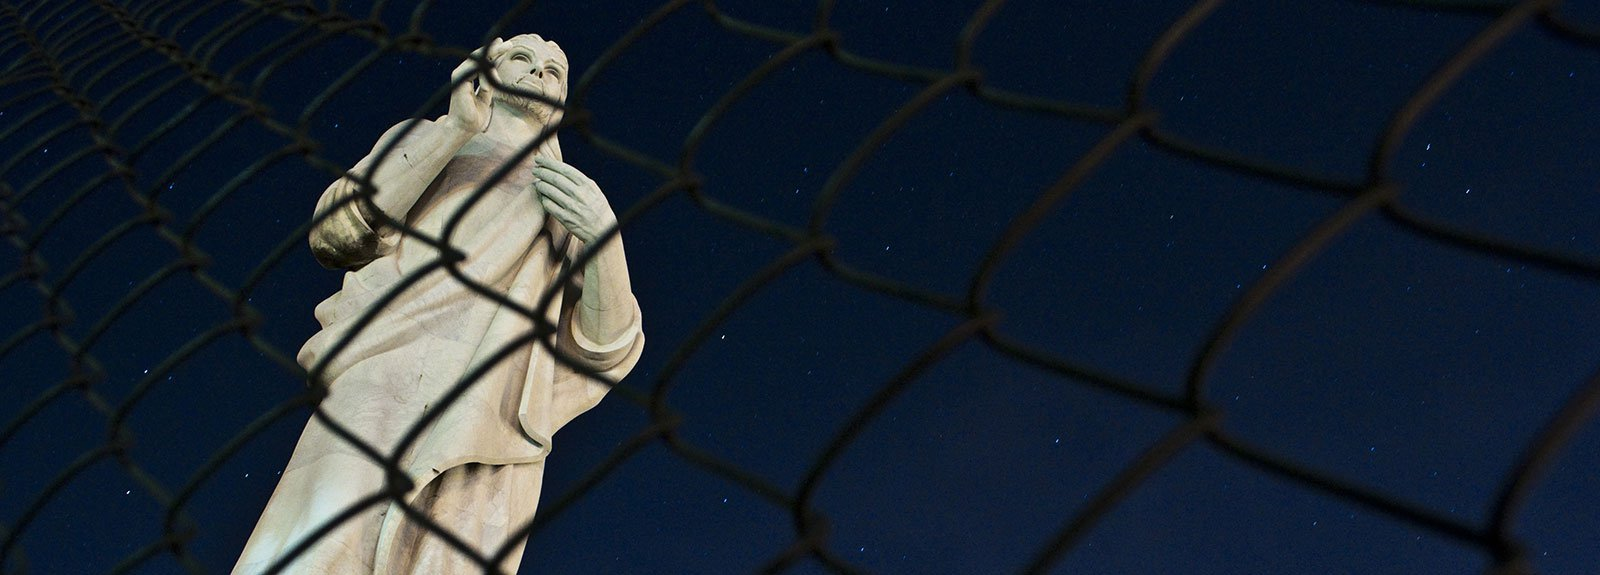 Statue of Jesus behind bars on Casablanca